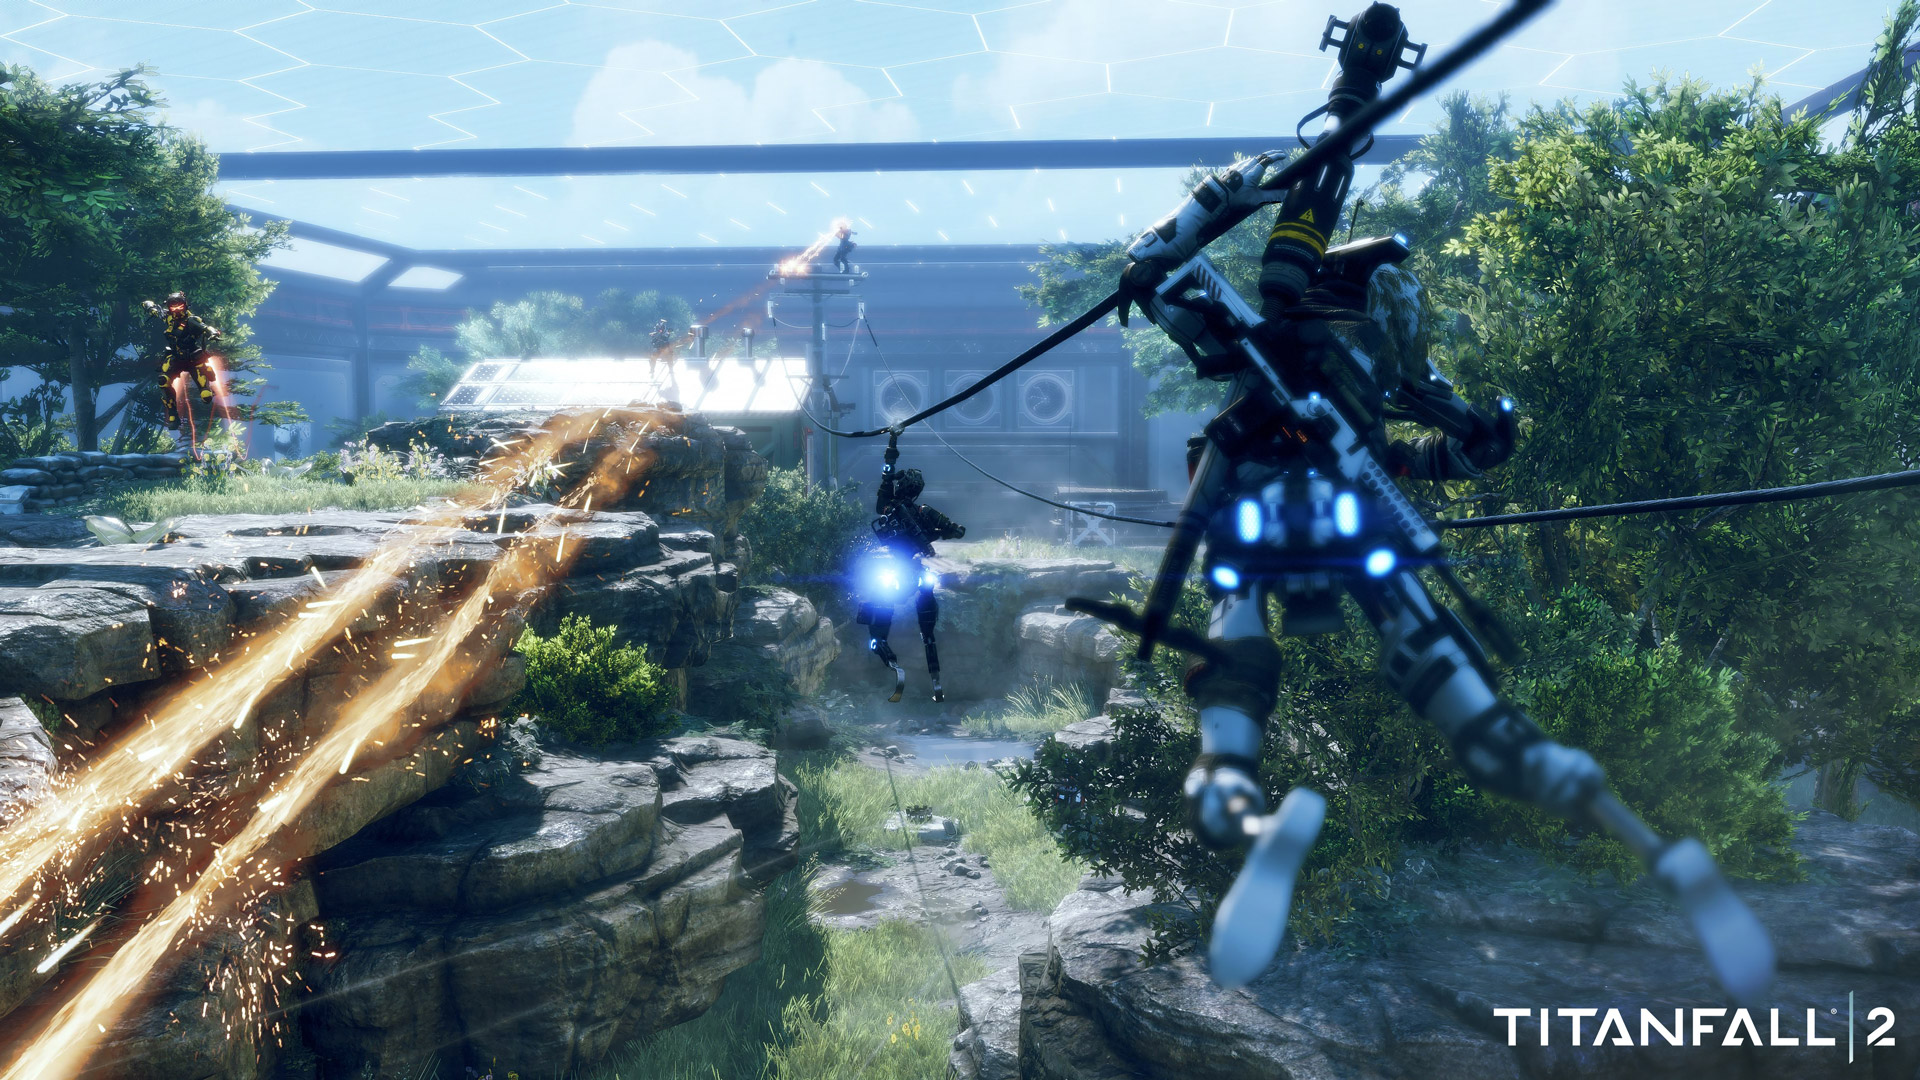 Titanfall 2 Xbox One X Support Detailed 4k Resolution